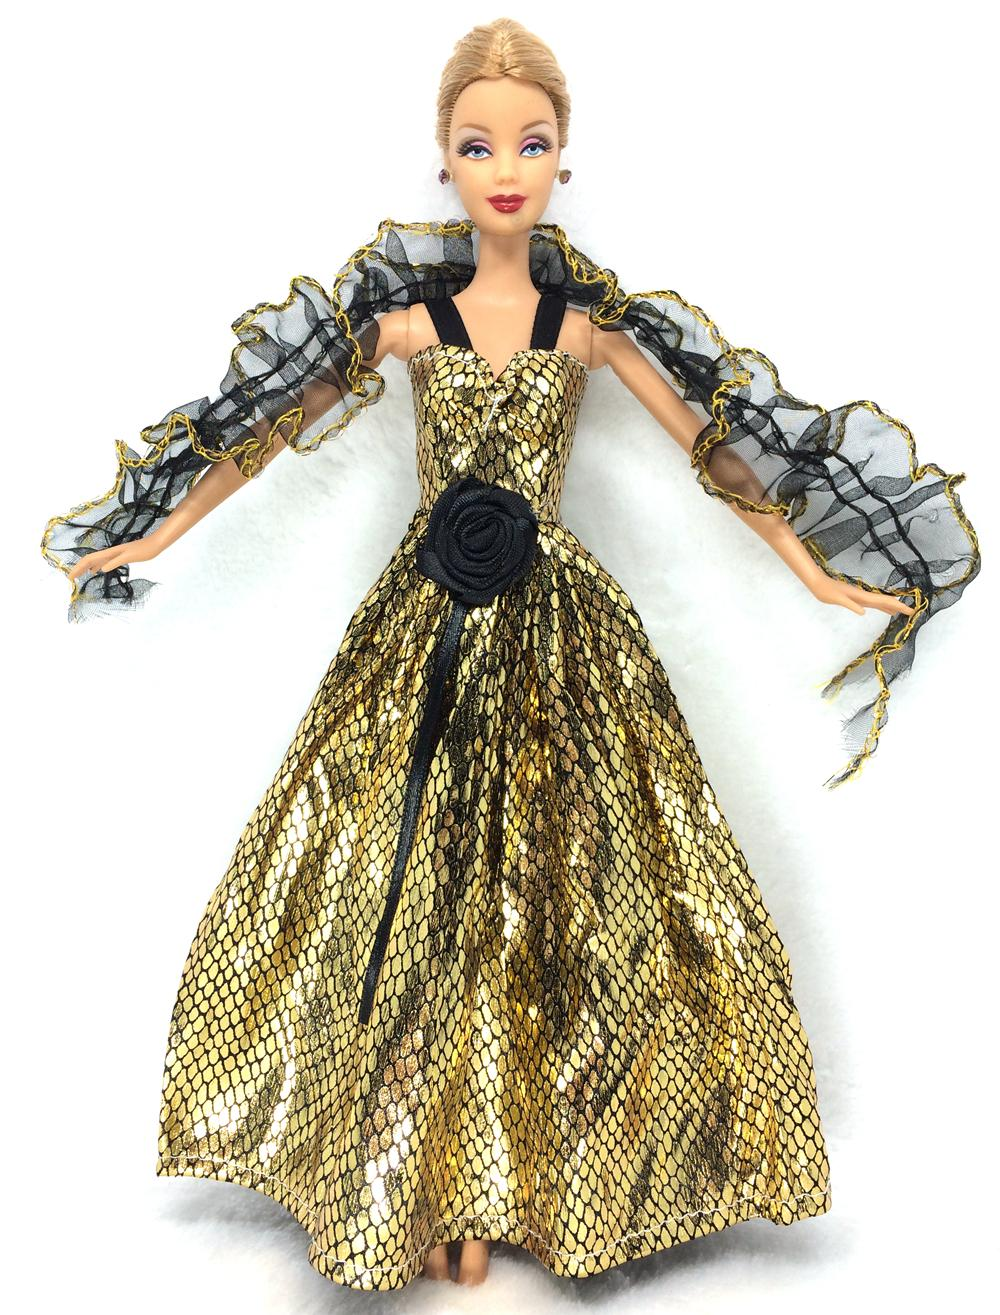 NK Newest Princess Golden Dress Lace Tippet Noble Party Gown For Barbie Doll Fashion Design Outfit Best Gift For Girl Doll